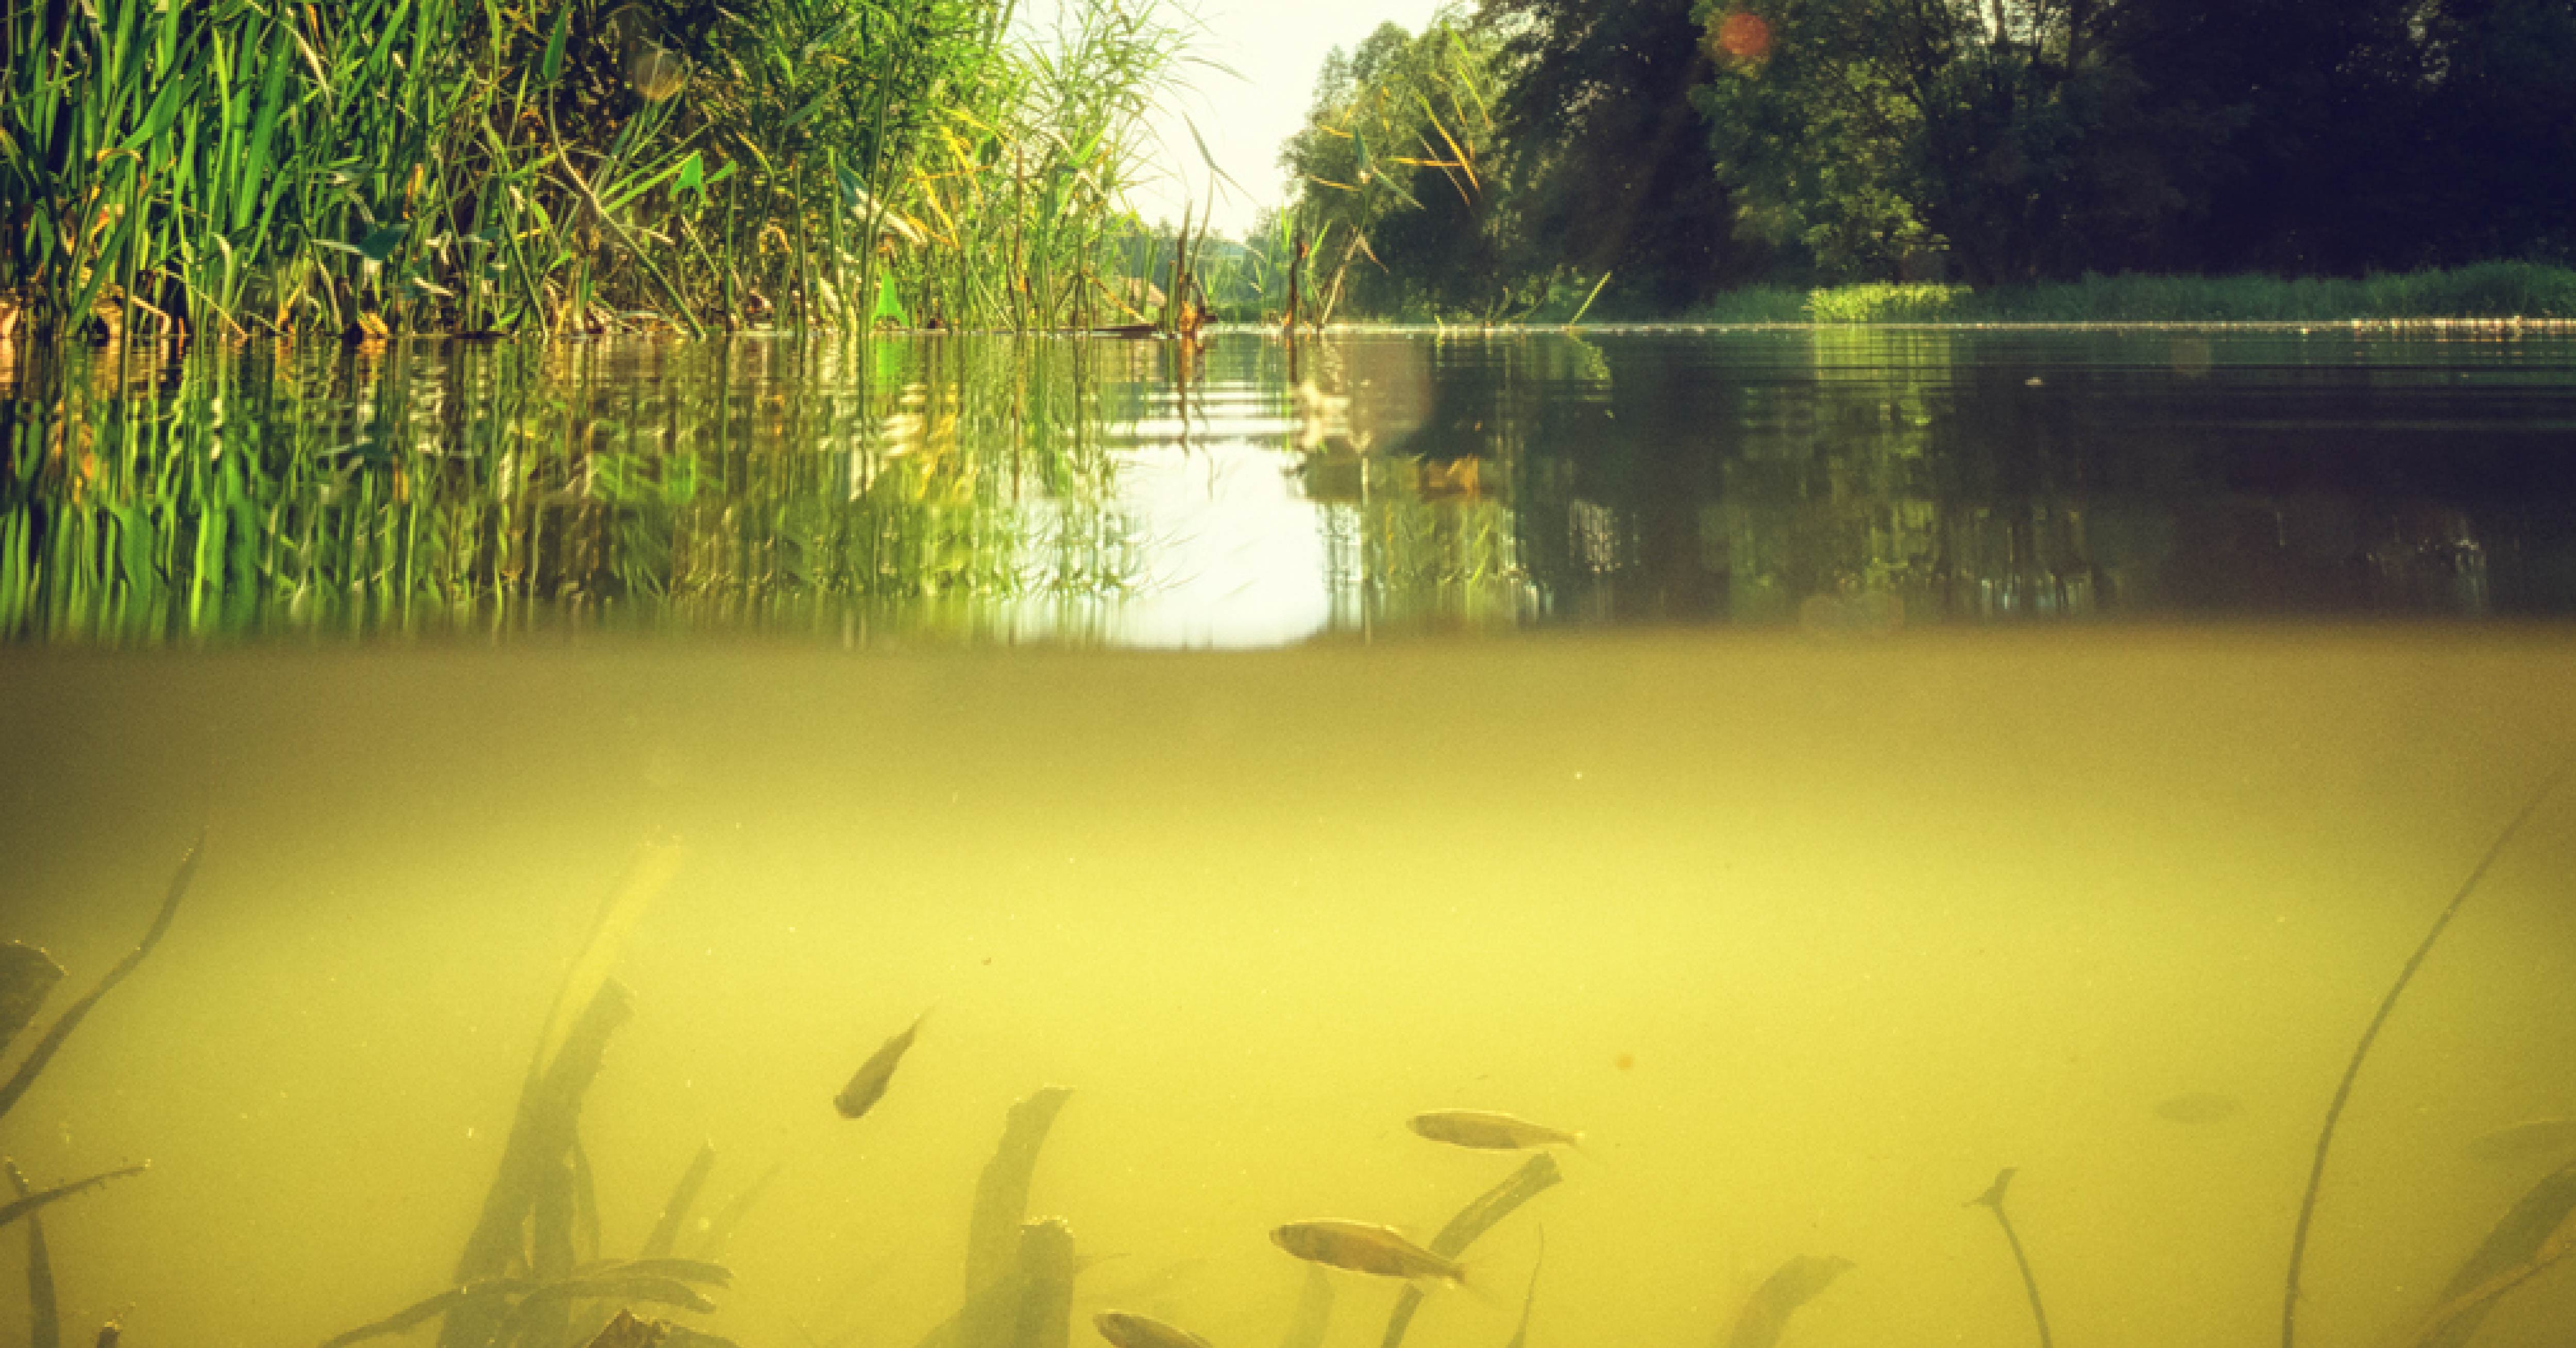 Green Pond Water with High Phosphorus Level in Need of Reducing